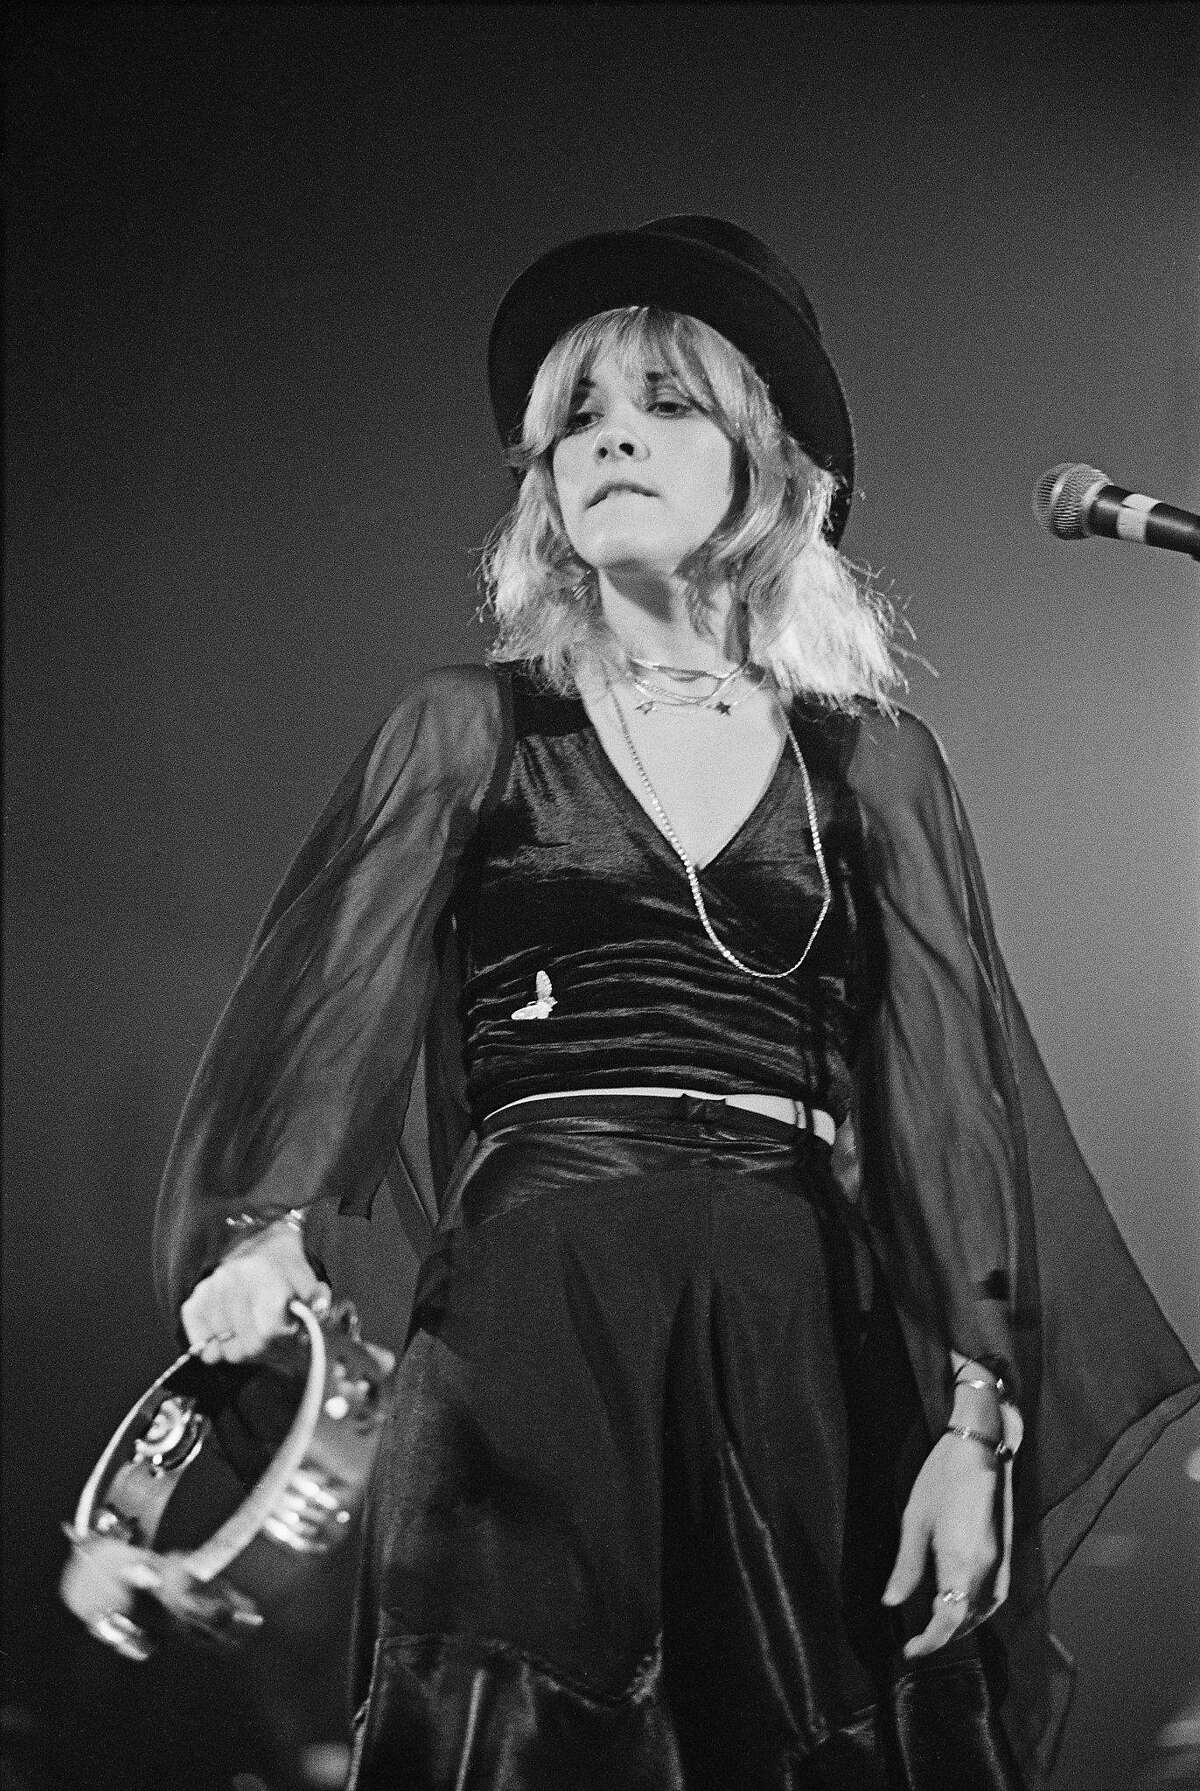 Singer Stevie Nicks of British-American rock band Fleetwood Mac performs live on stage at Yale Coliseum in New Haven, Connecticut, USA, on November 20, 1975.